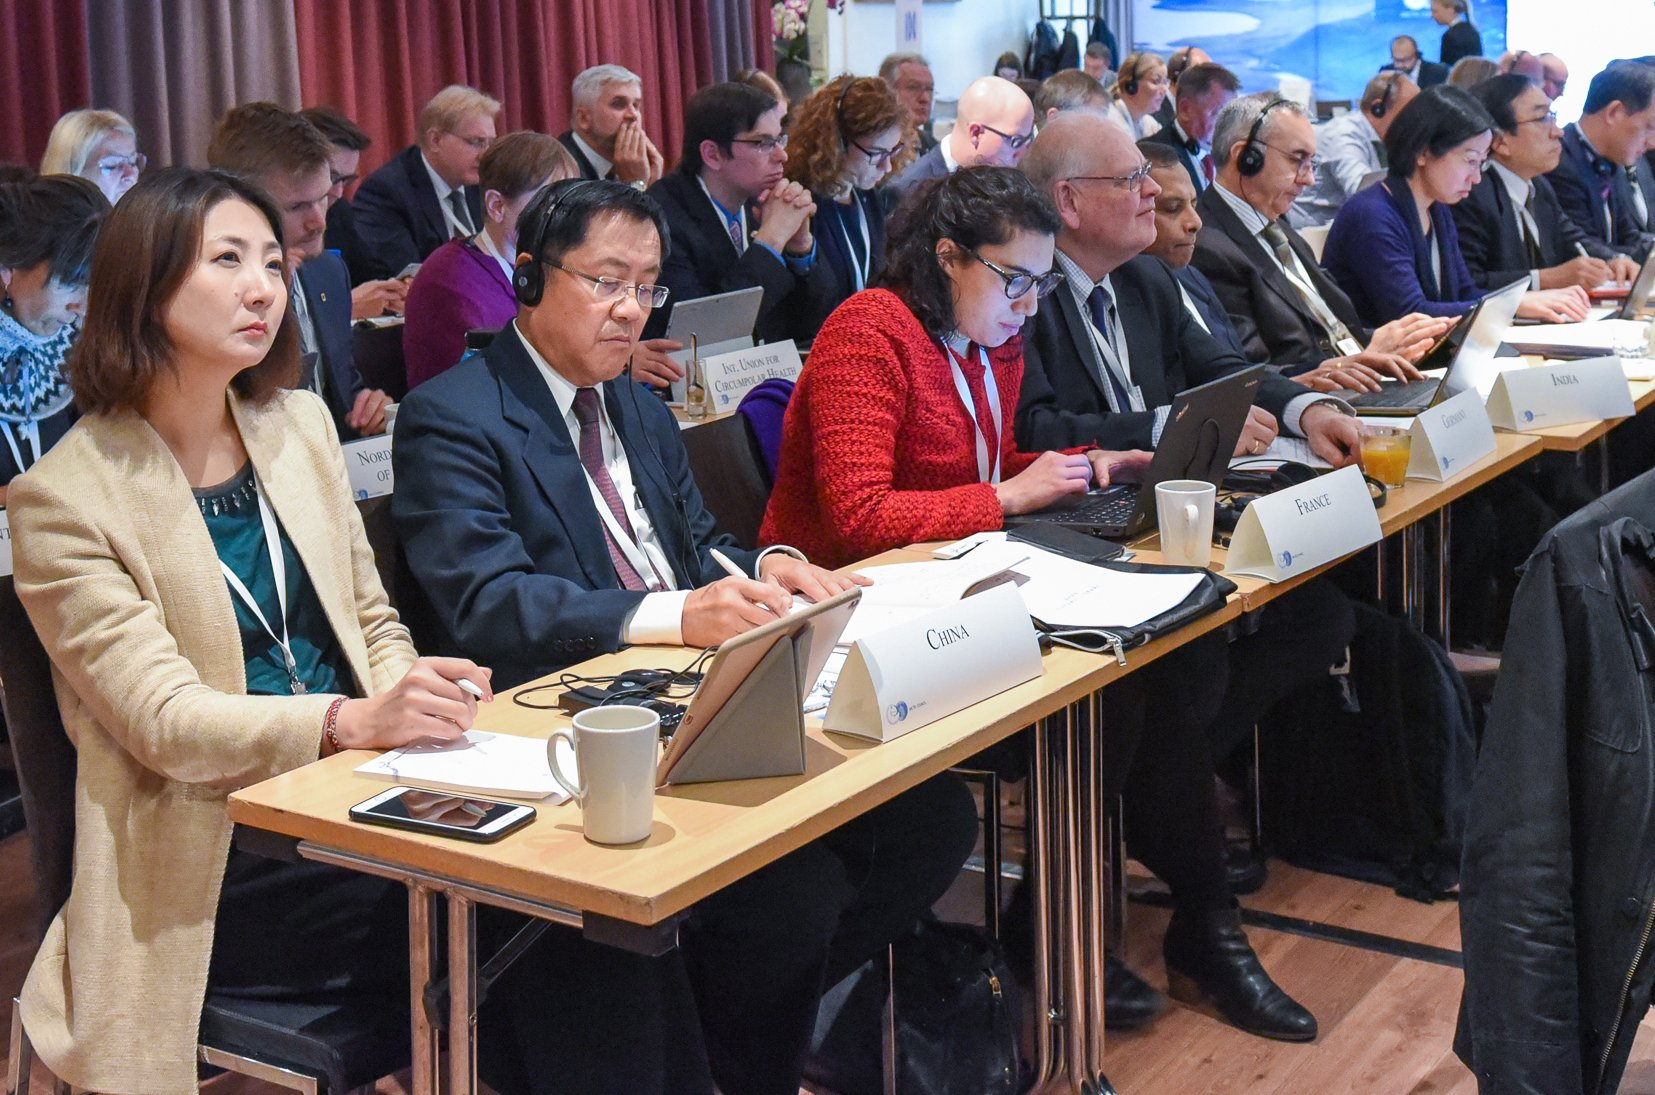 Estonia is applying to become an Arctic Council observer - ArcticToday